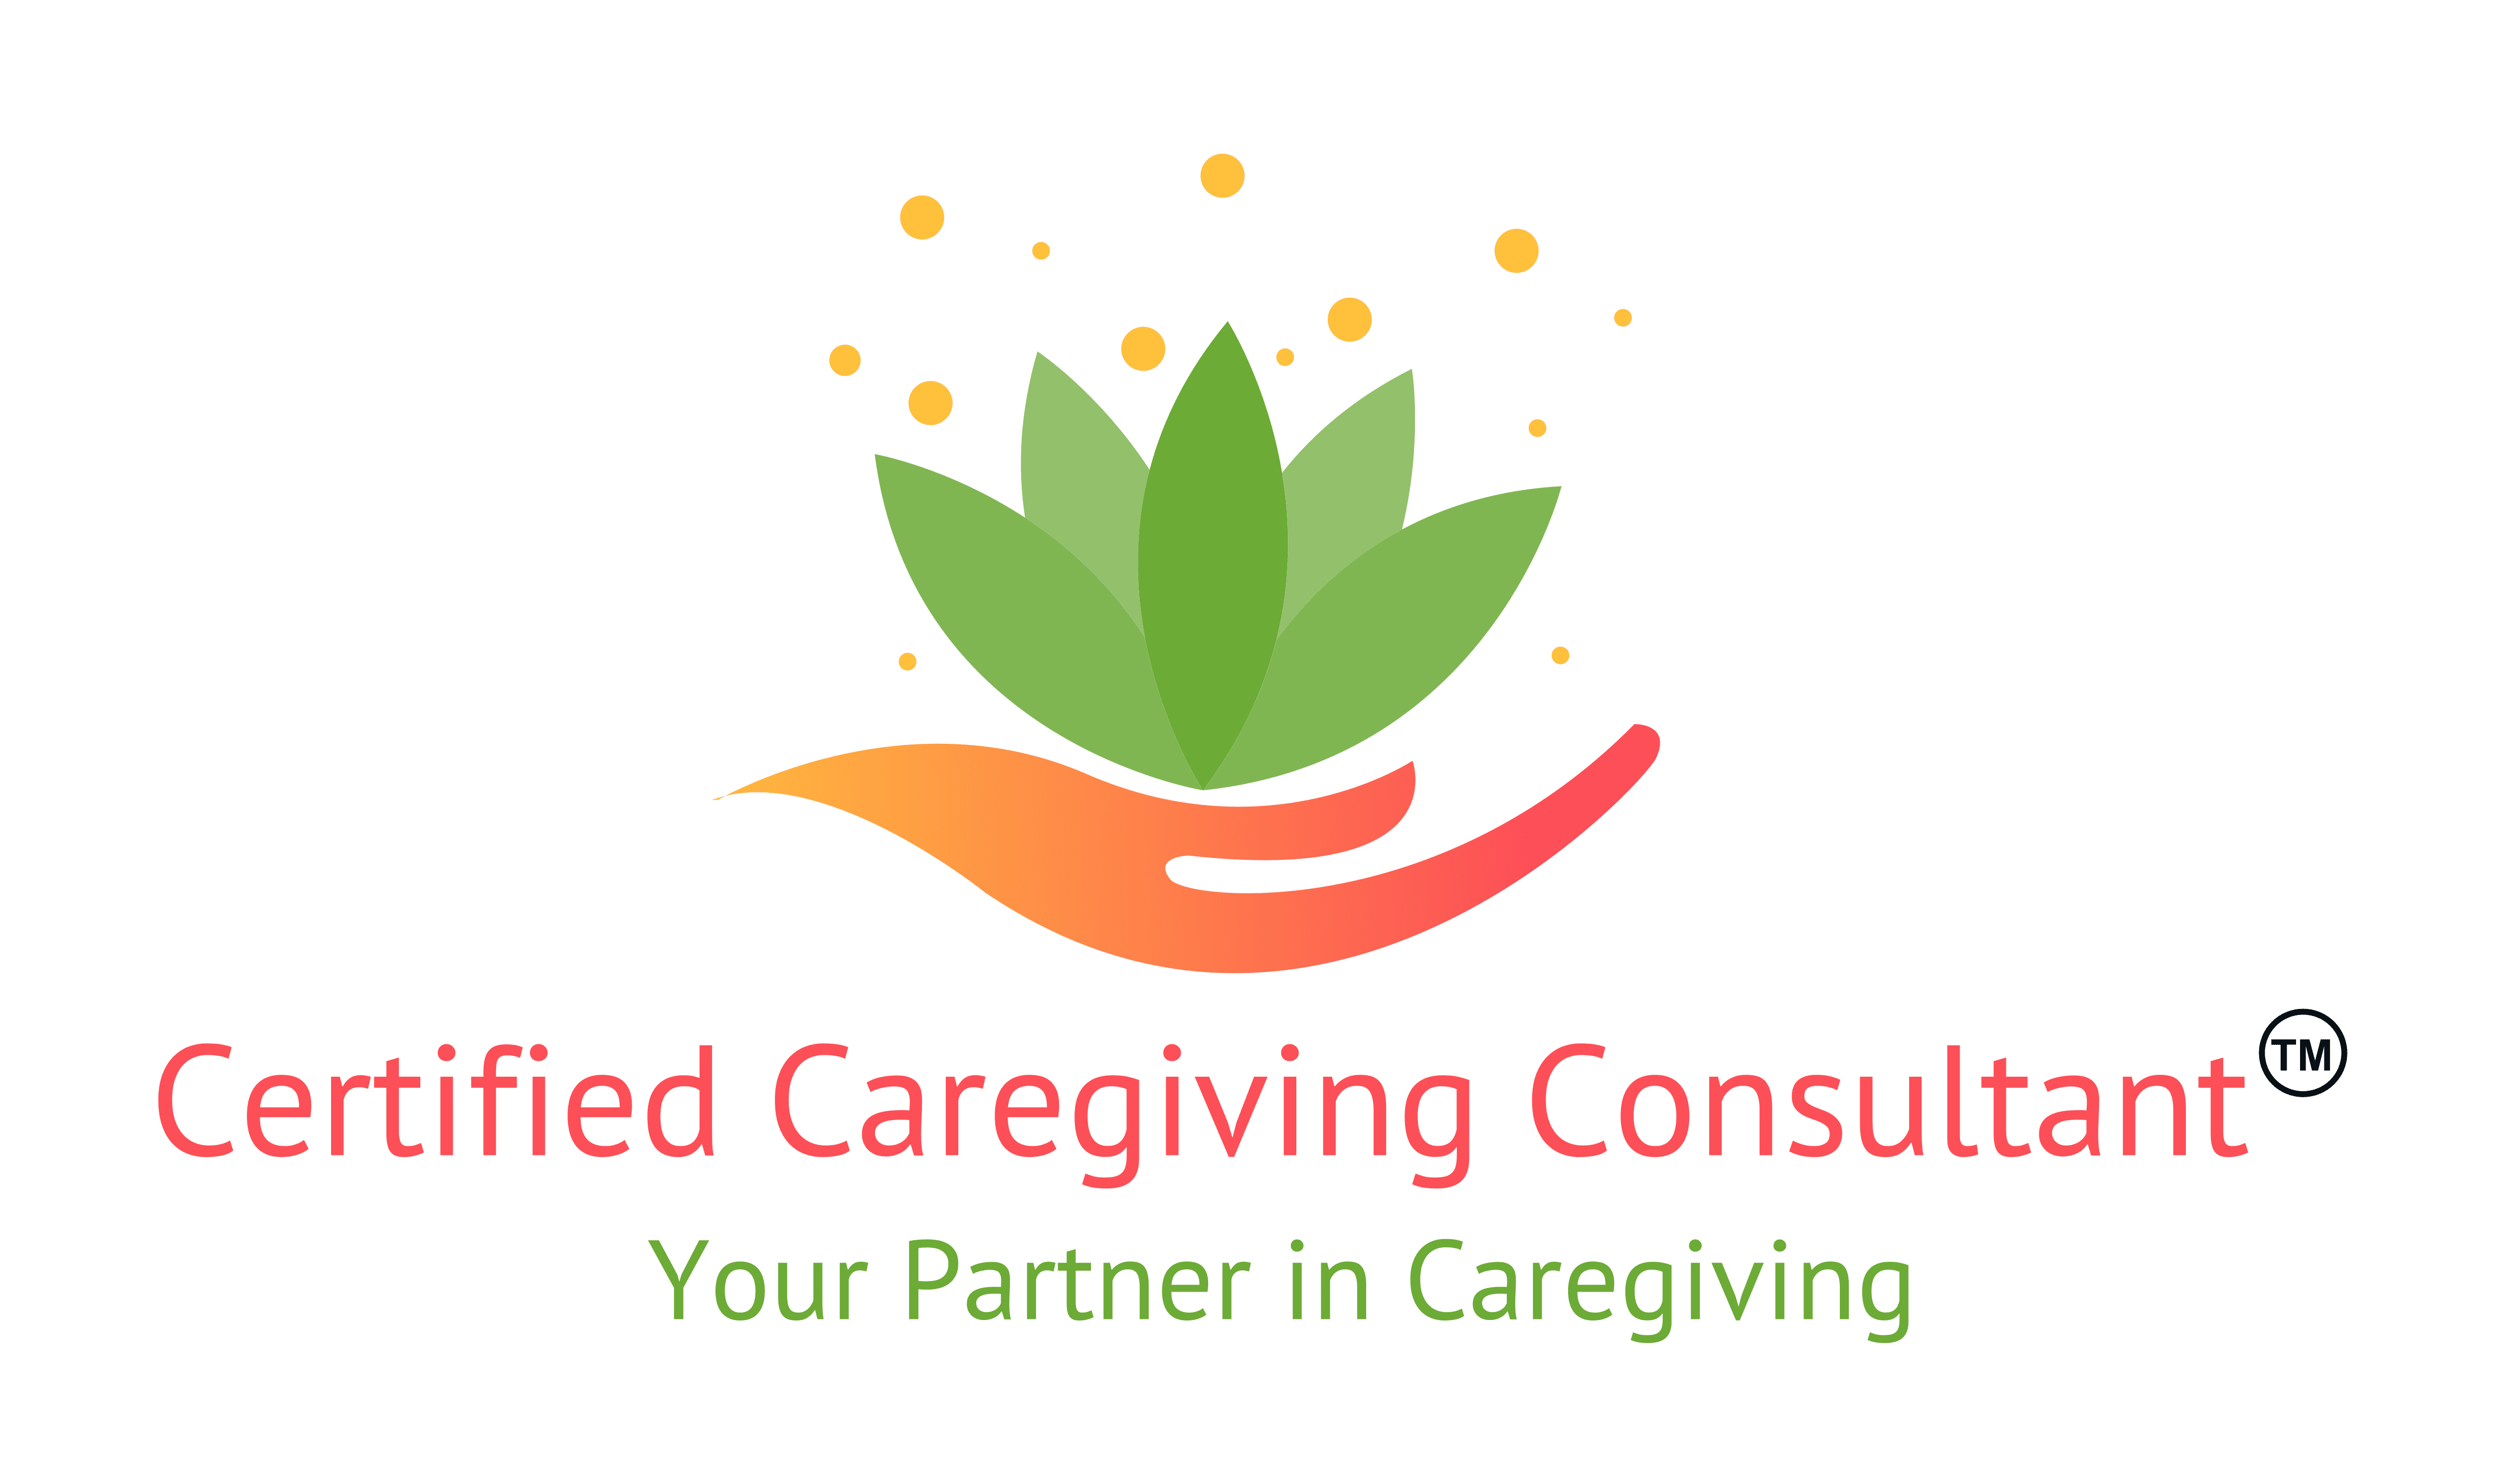 Graphic: Certified Caregiving Consultant™ badge